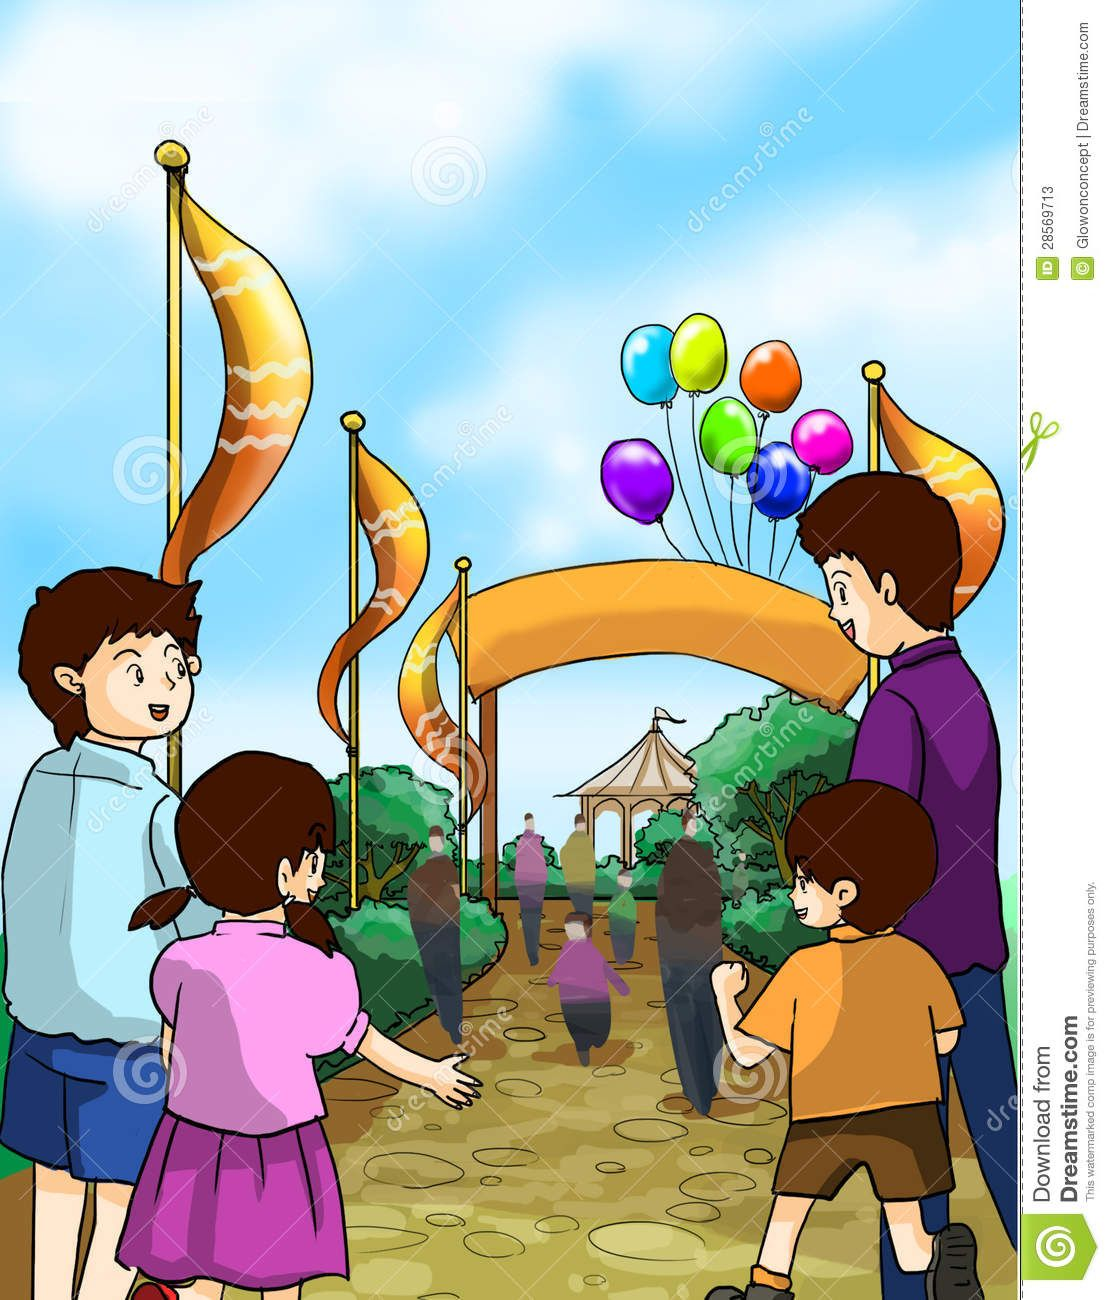 1110x1300 Funfair Drawing For Kids Kids And Families Go To A Fun Funfair